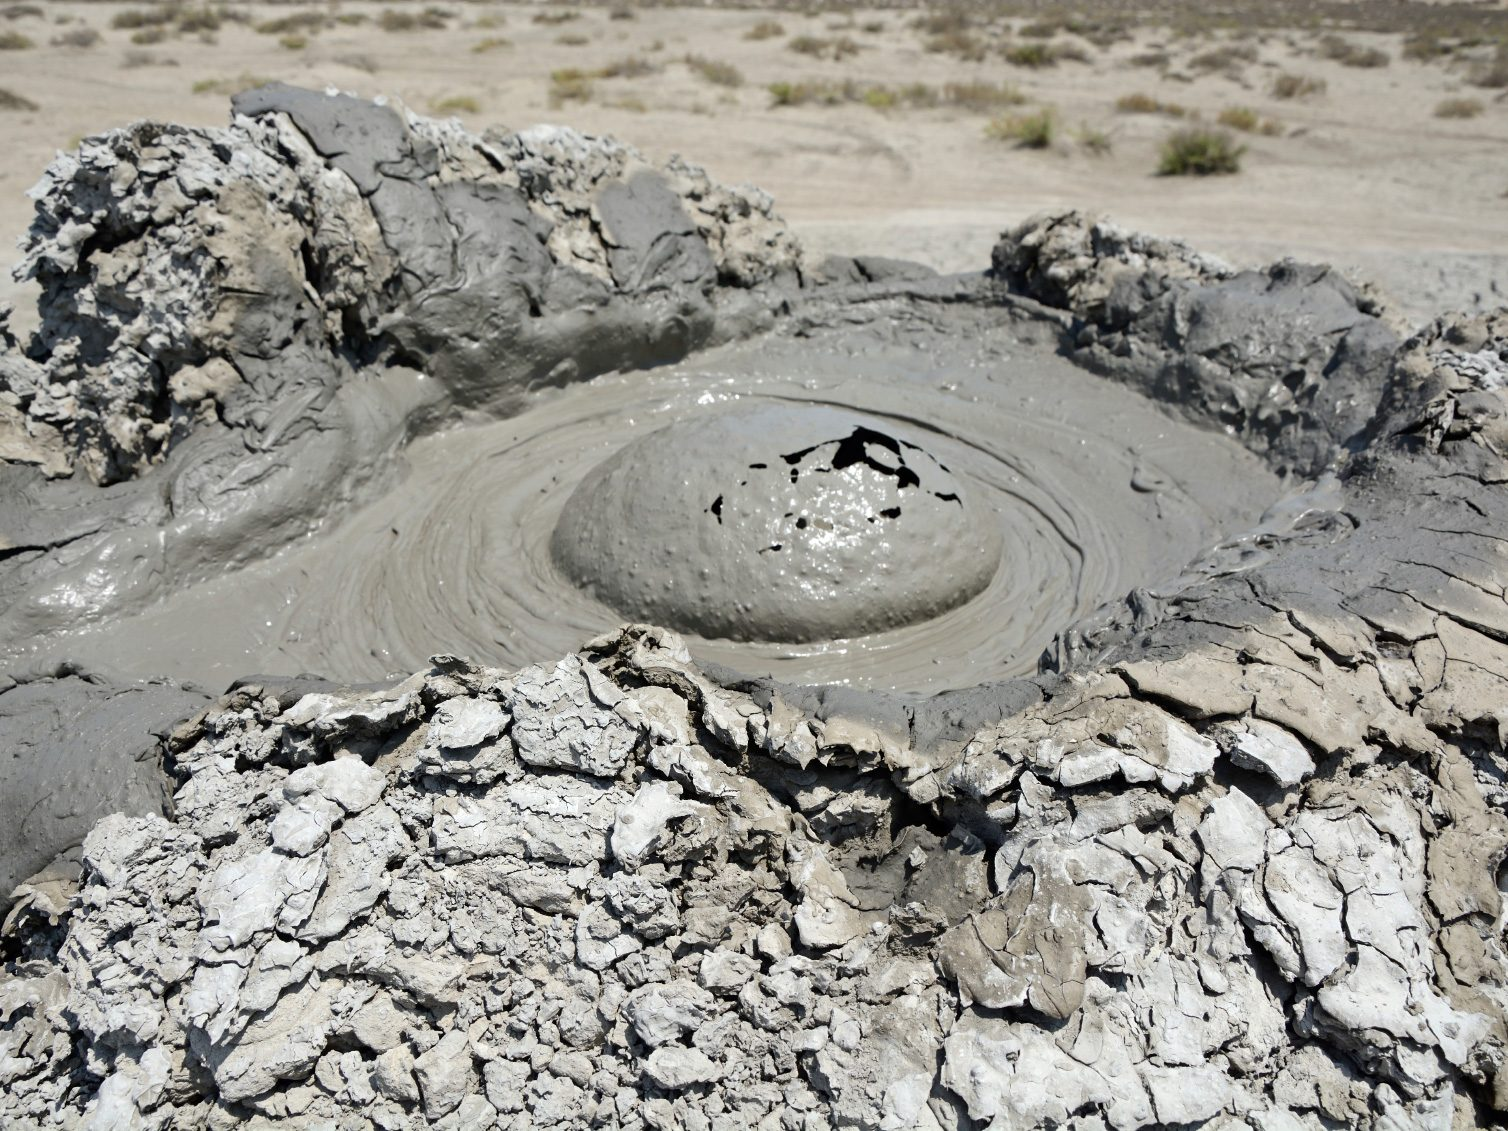 Travel: Mud Volcanoes, Azerbeijan